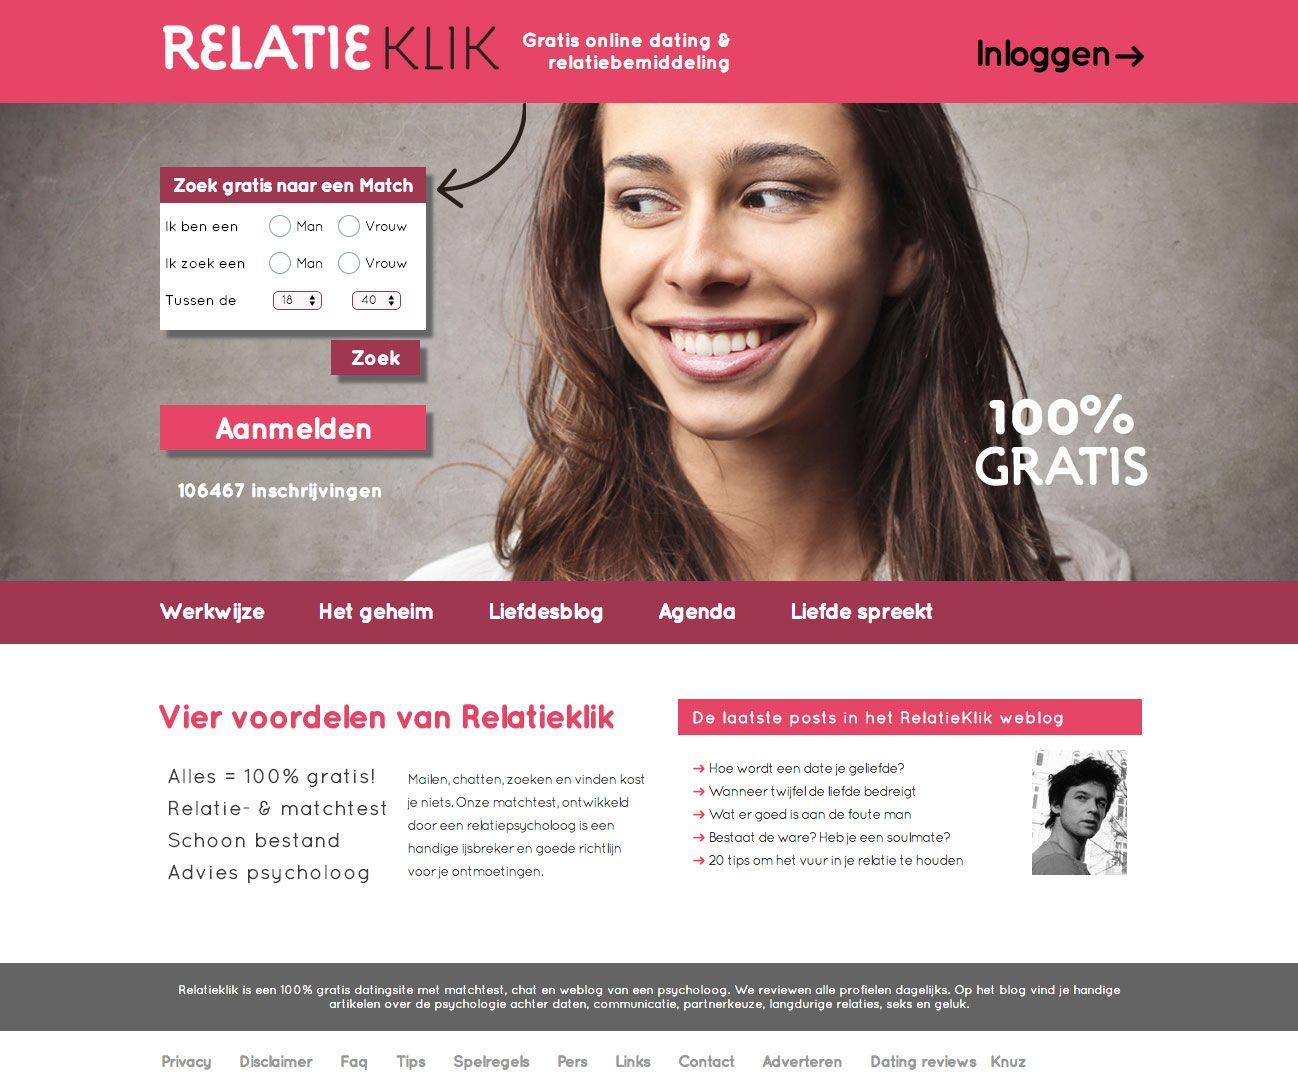 100 gratis dating site.com matchmaking værdi wow